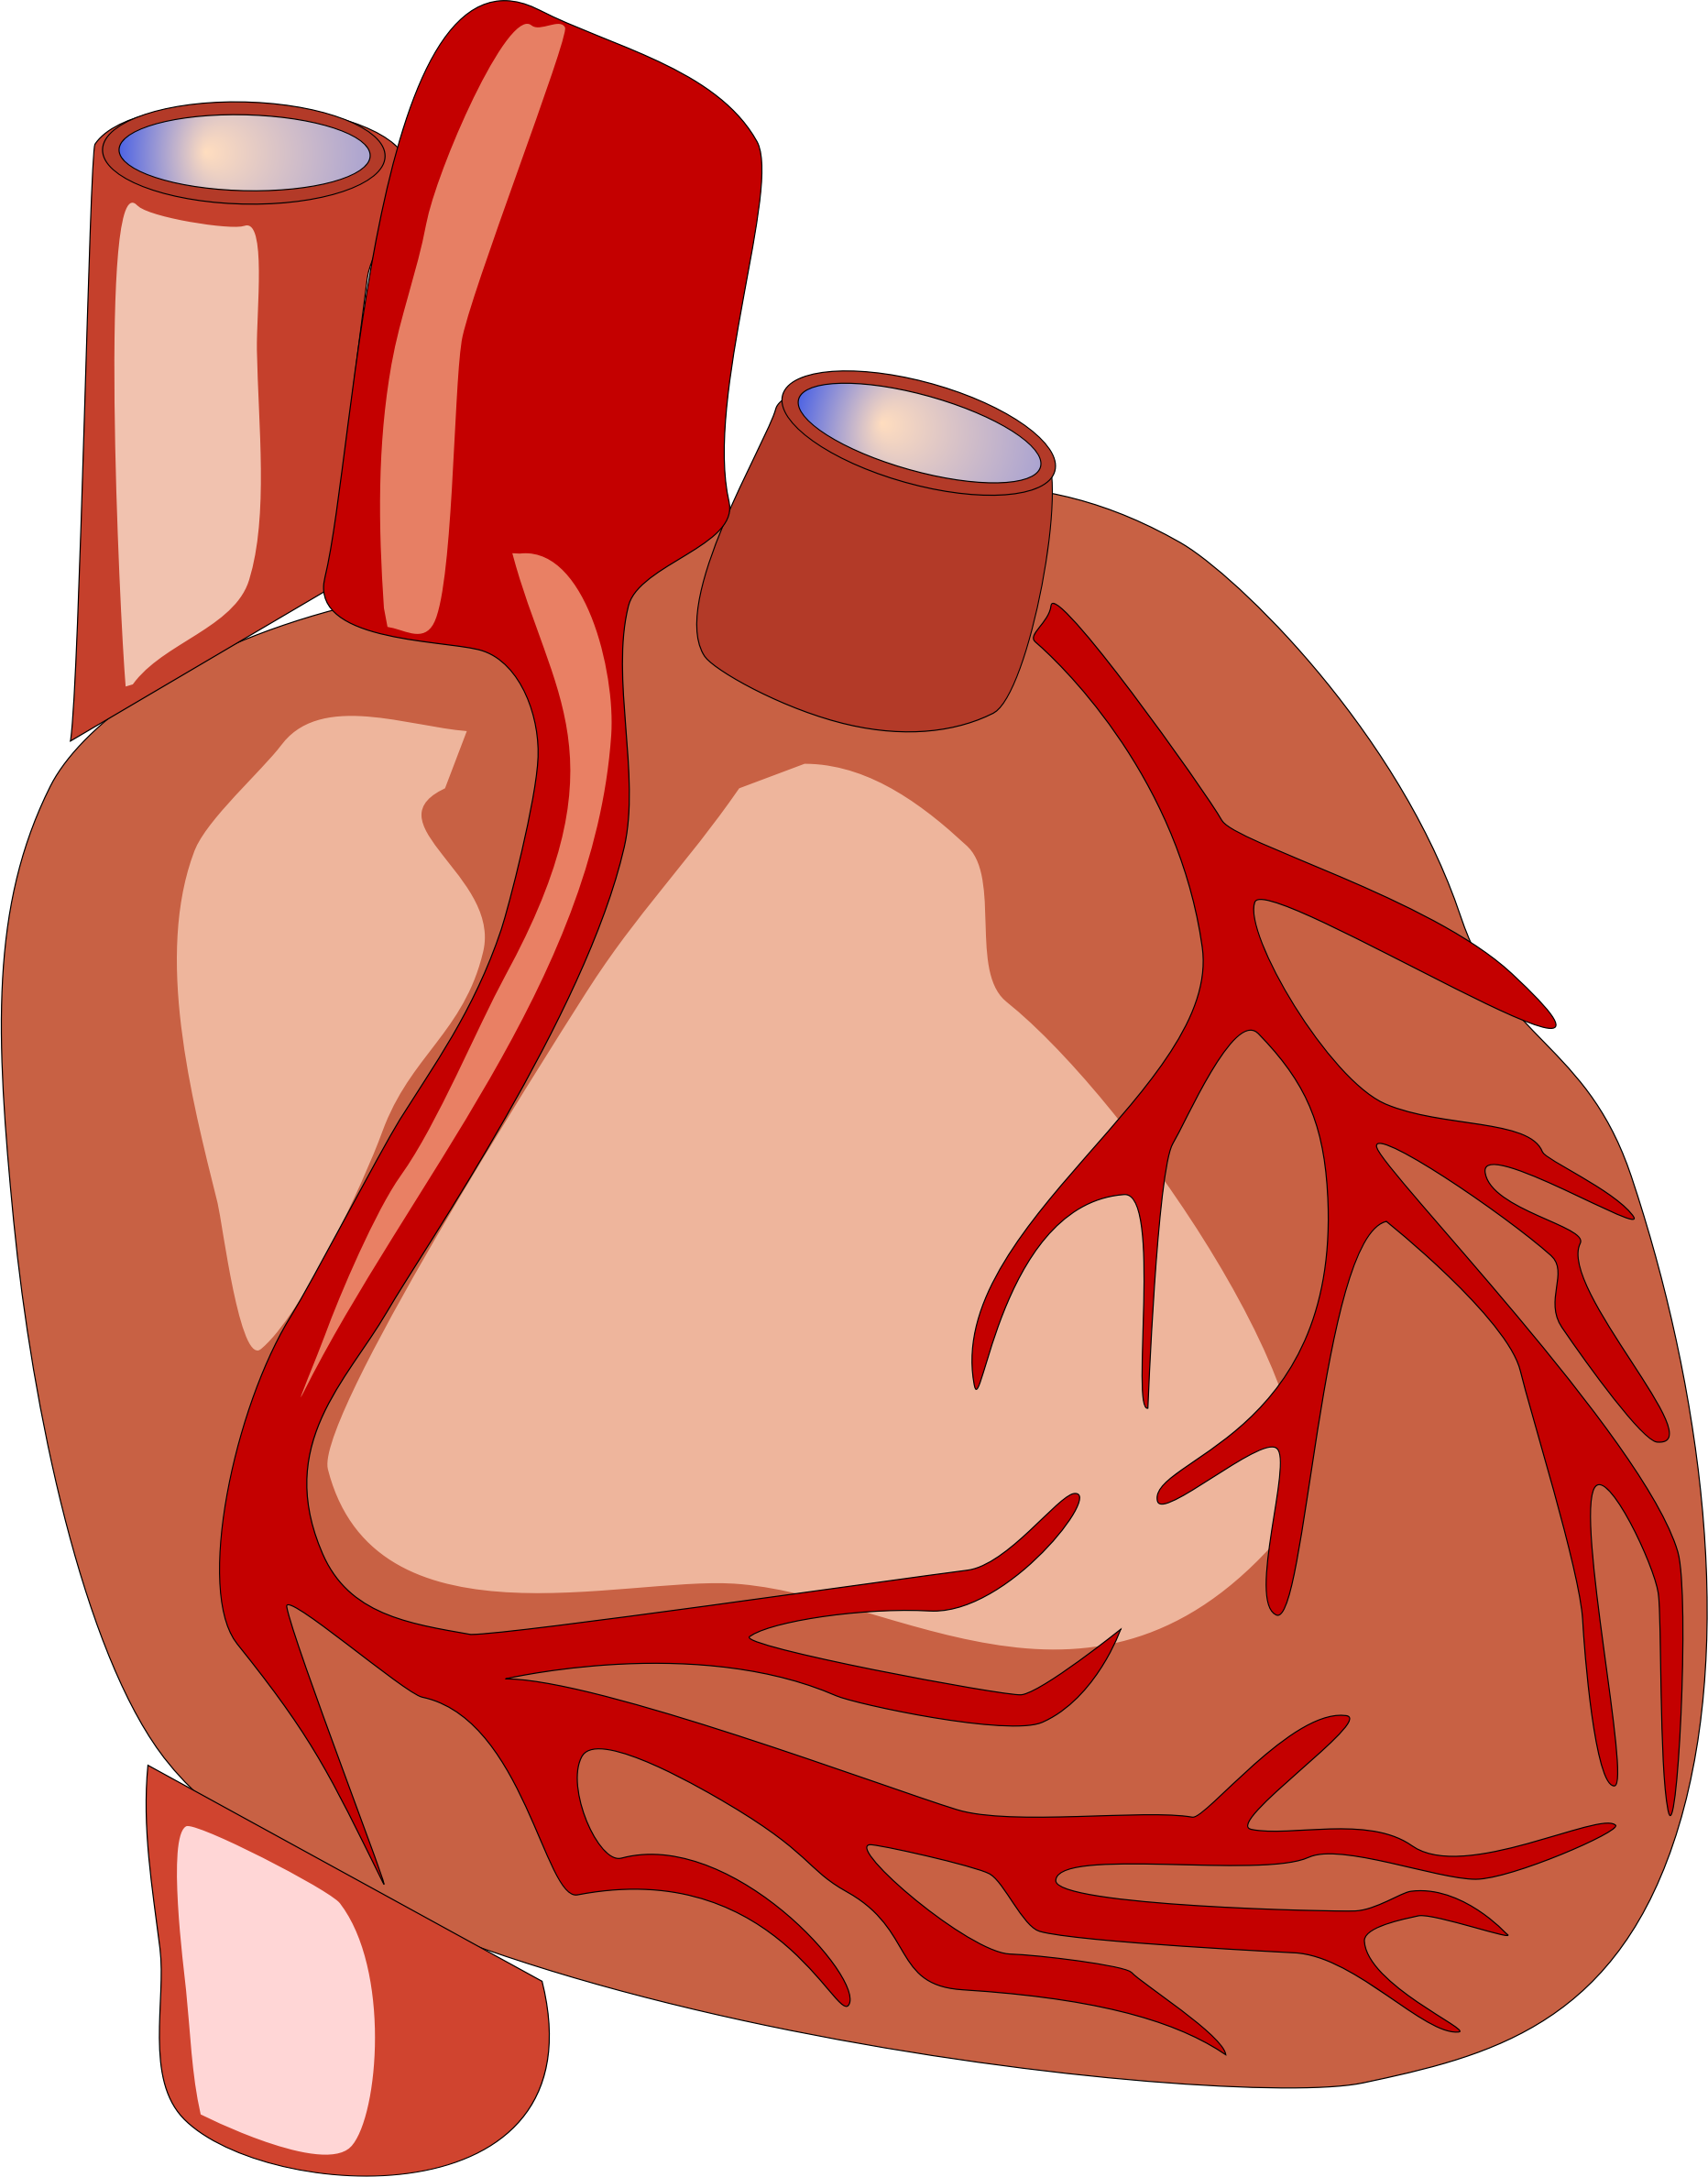 Human heart clipart drawing picture black and white Clipart - Human heart picture black and white